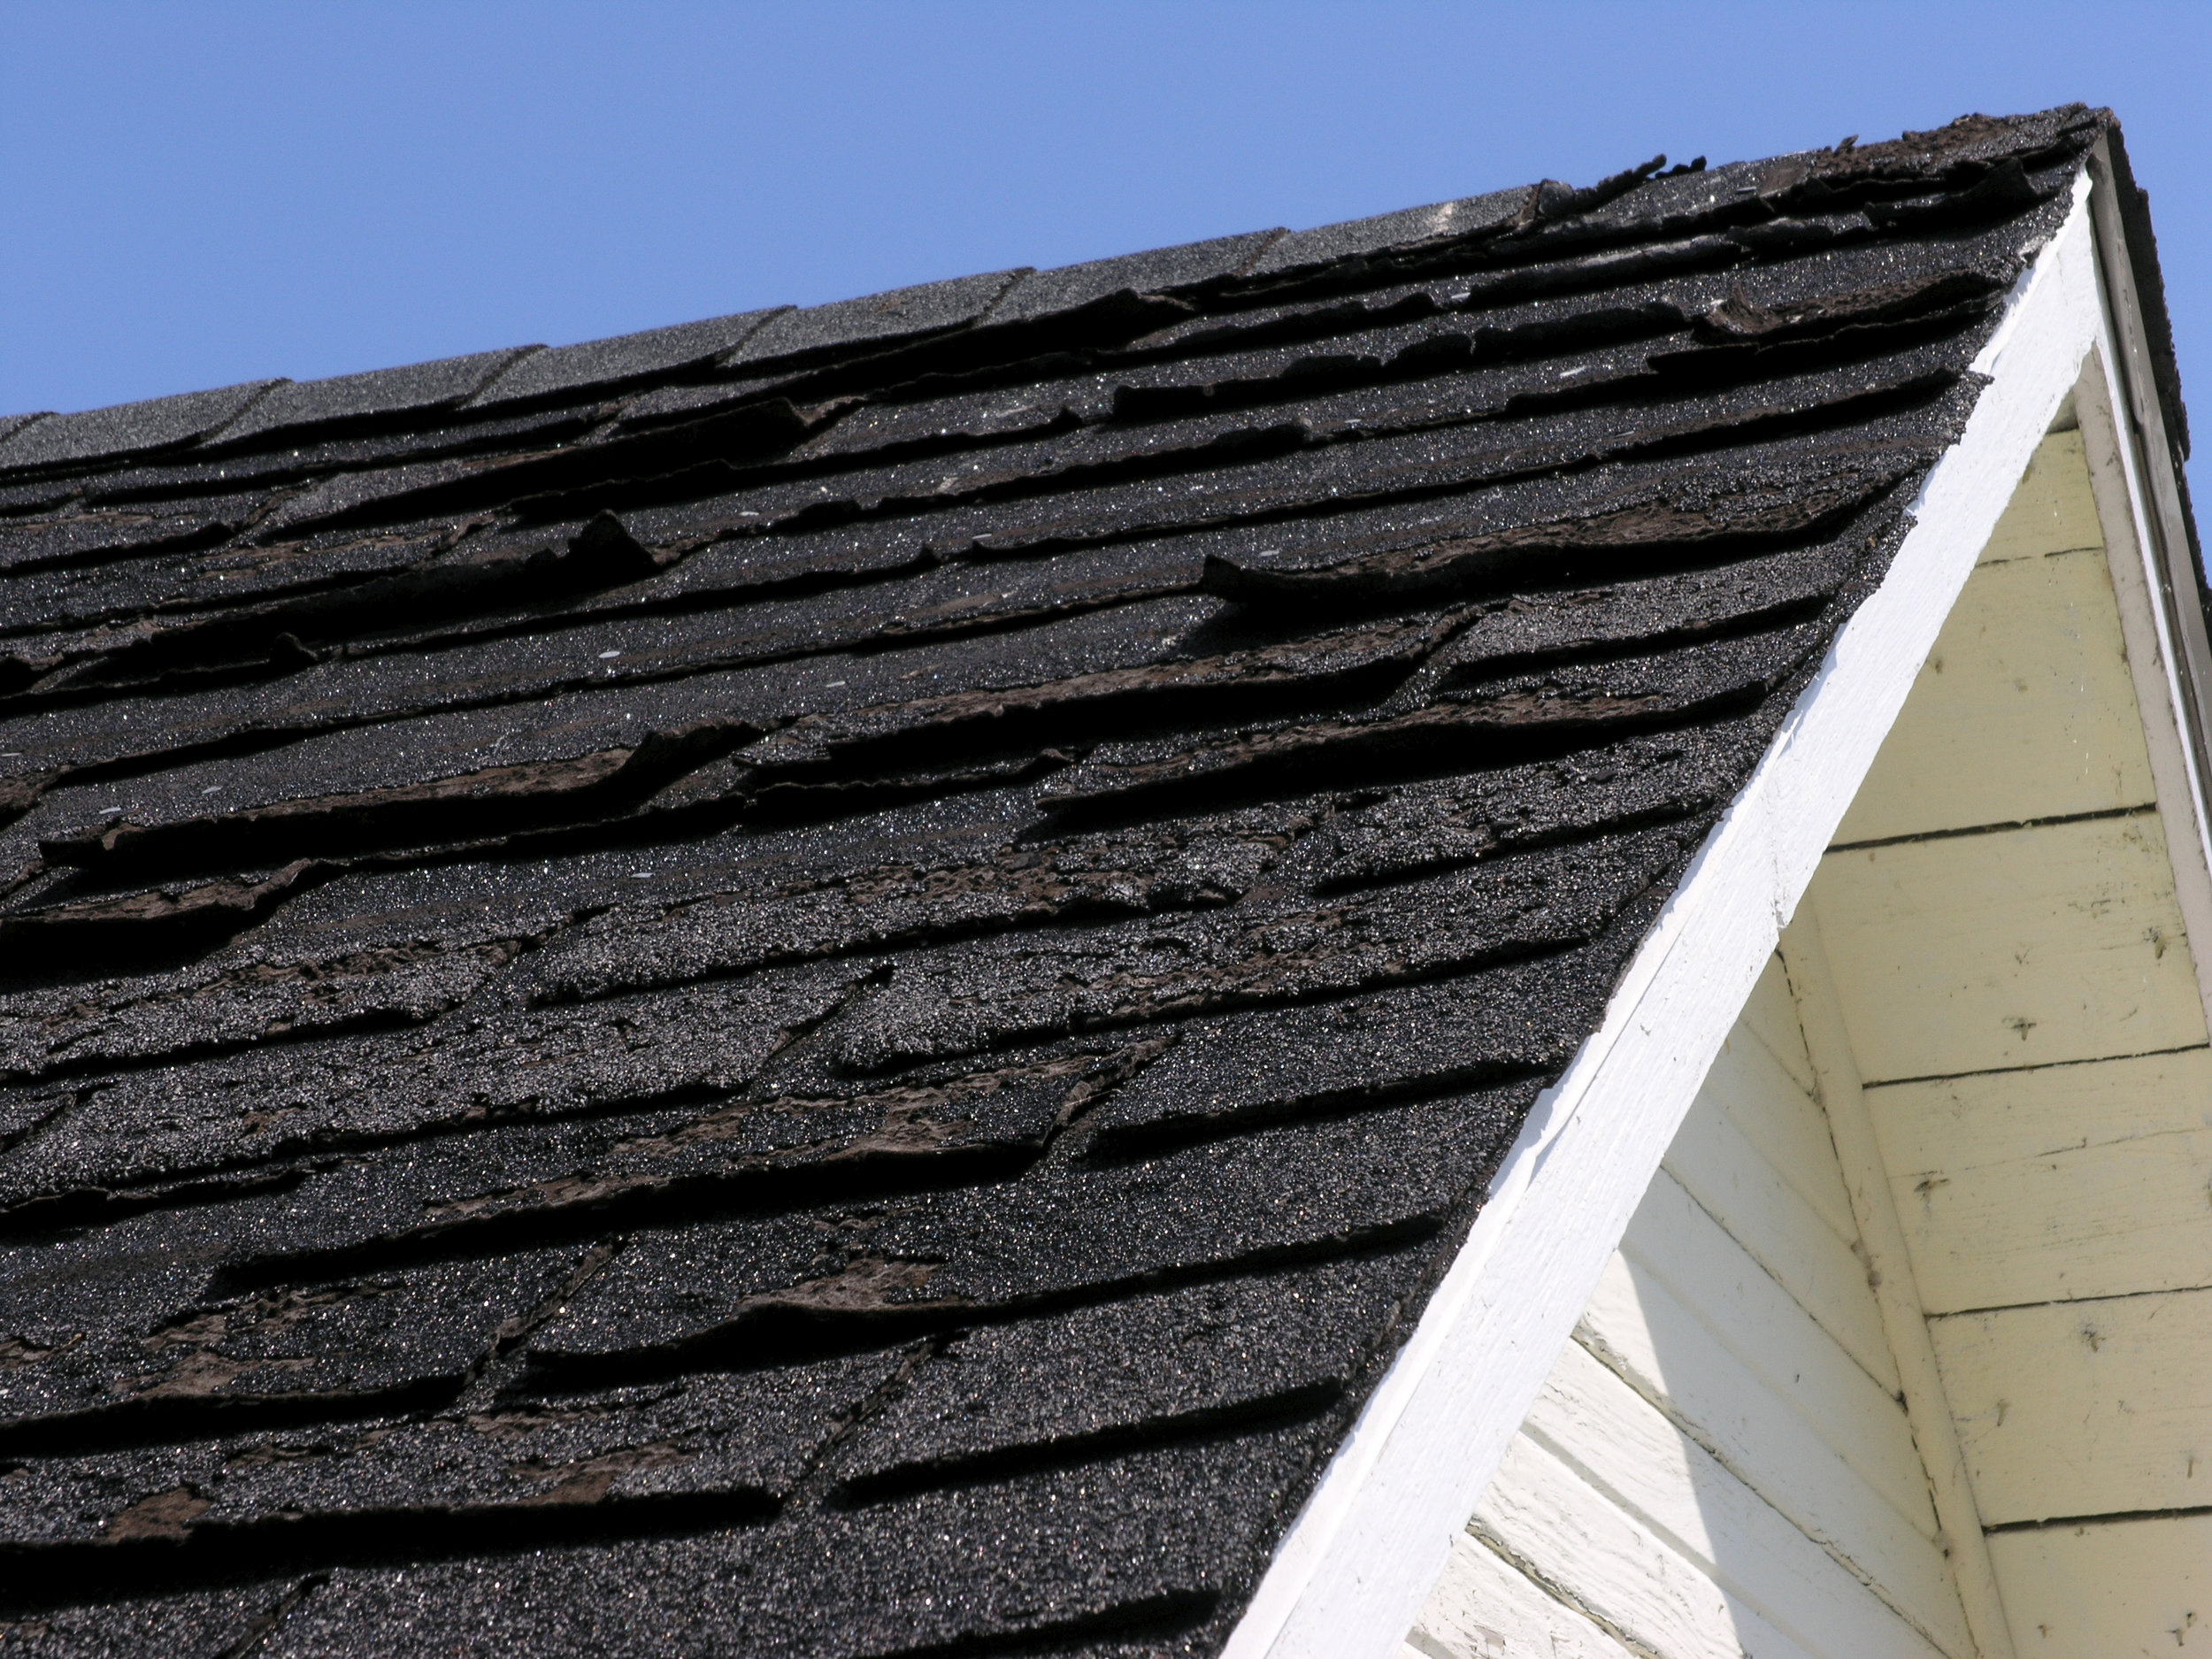 curled and warped roof shingles.jpg